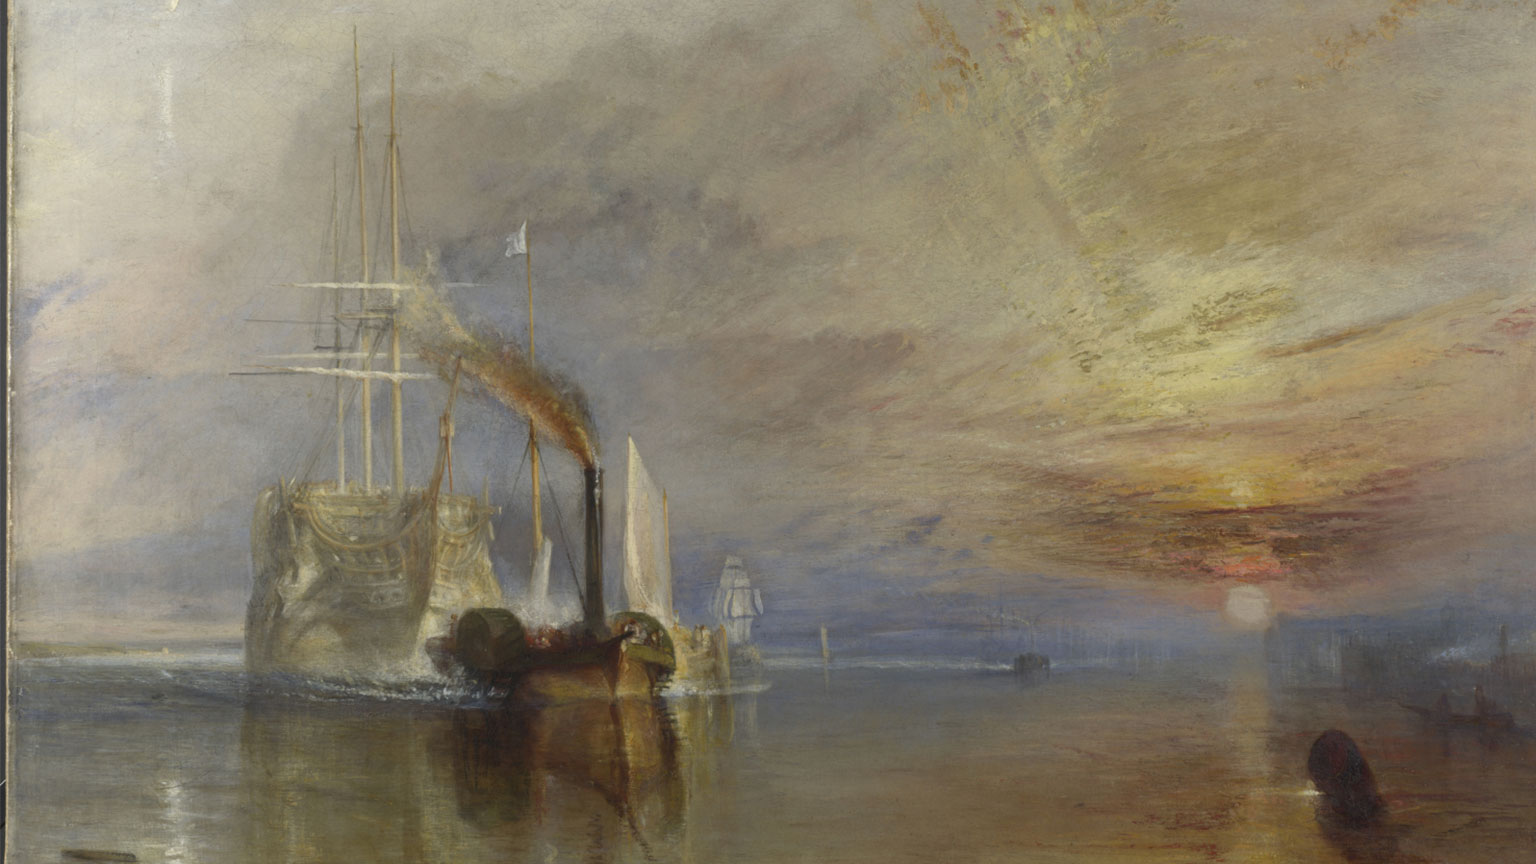 Joseph Mallord William Turner, The Fighting Temeraire tugged to her last berth to be broken up, 1839.